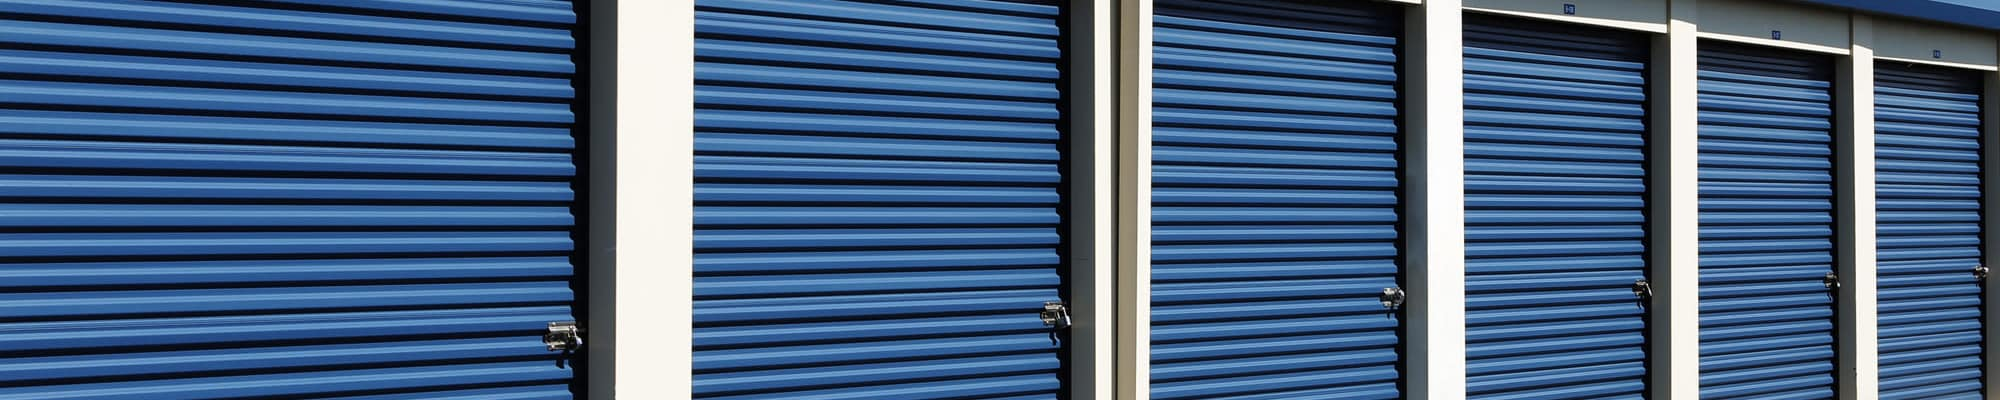 Business storage at Midgard Self Storage in Greenwood, South Carolina